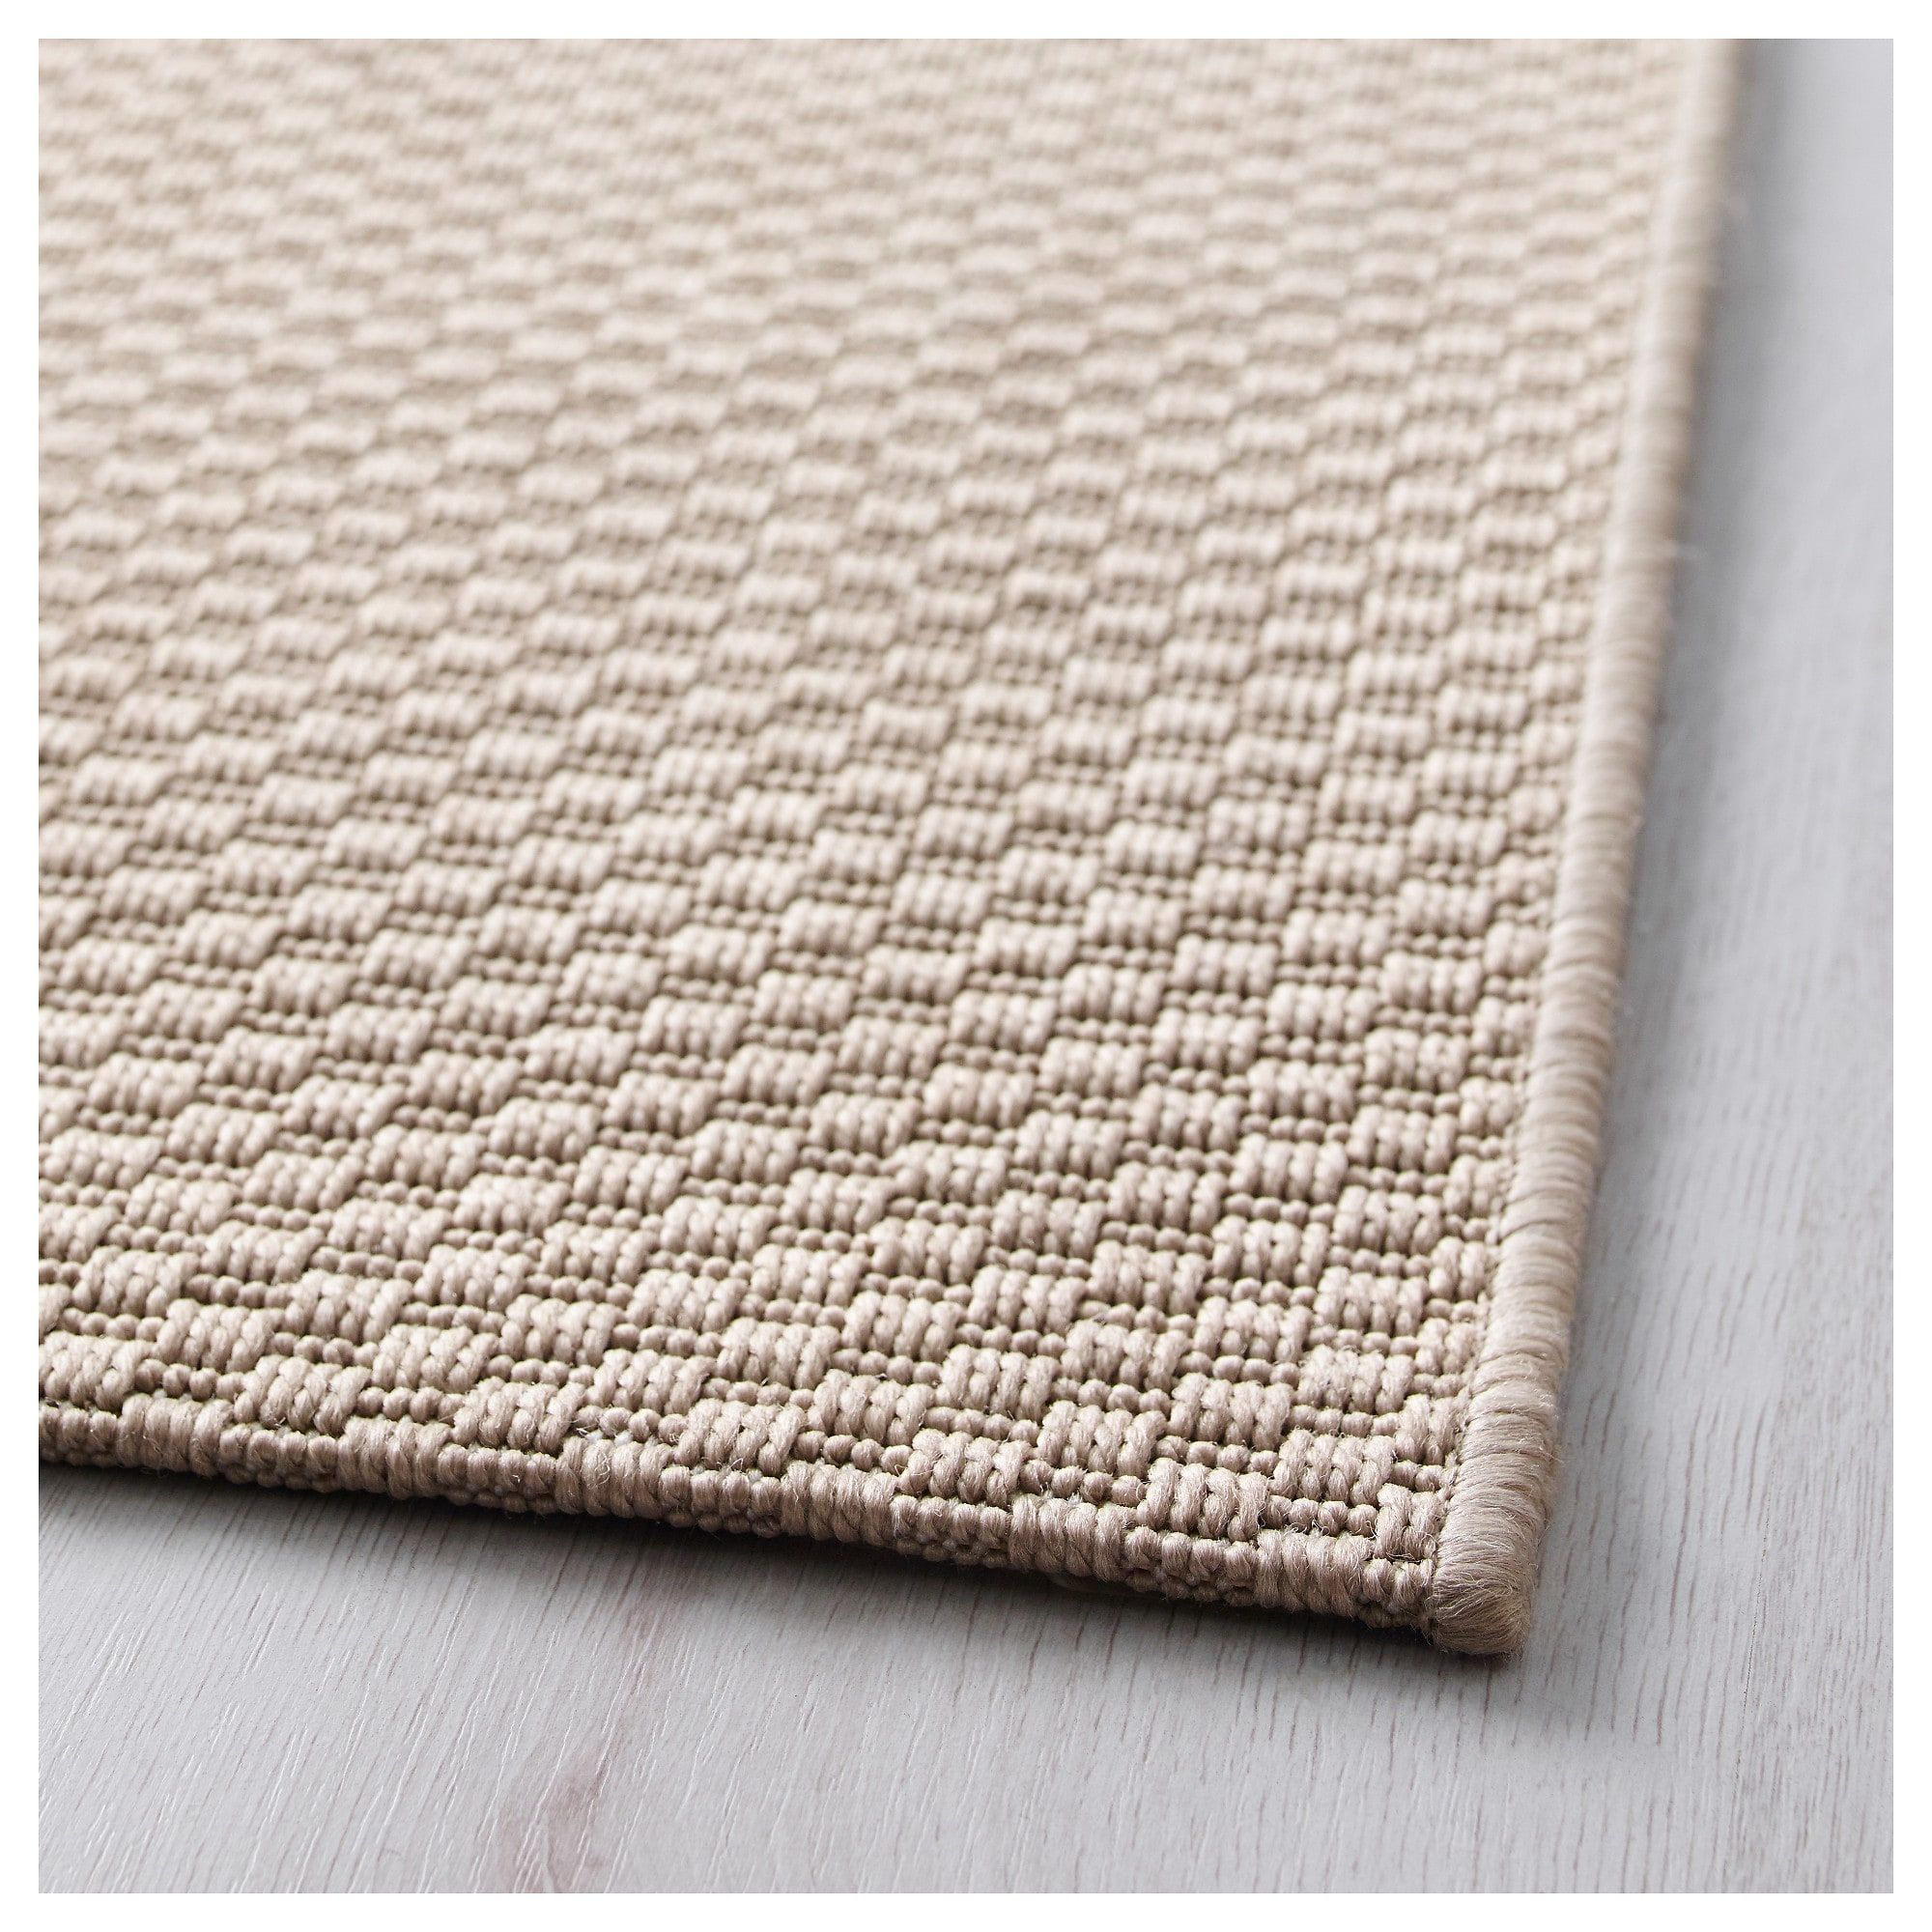 Ikea Morum Indooroutdoor Beige Rug Flatwoven Inoutdoor In